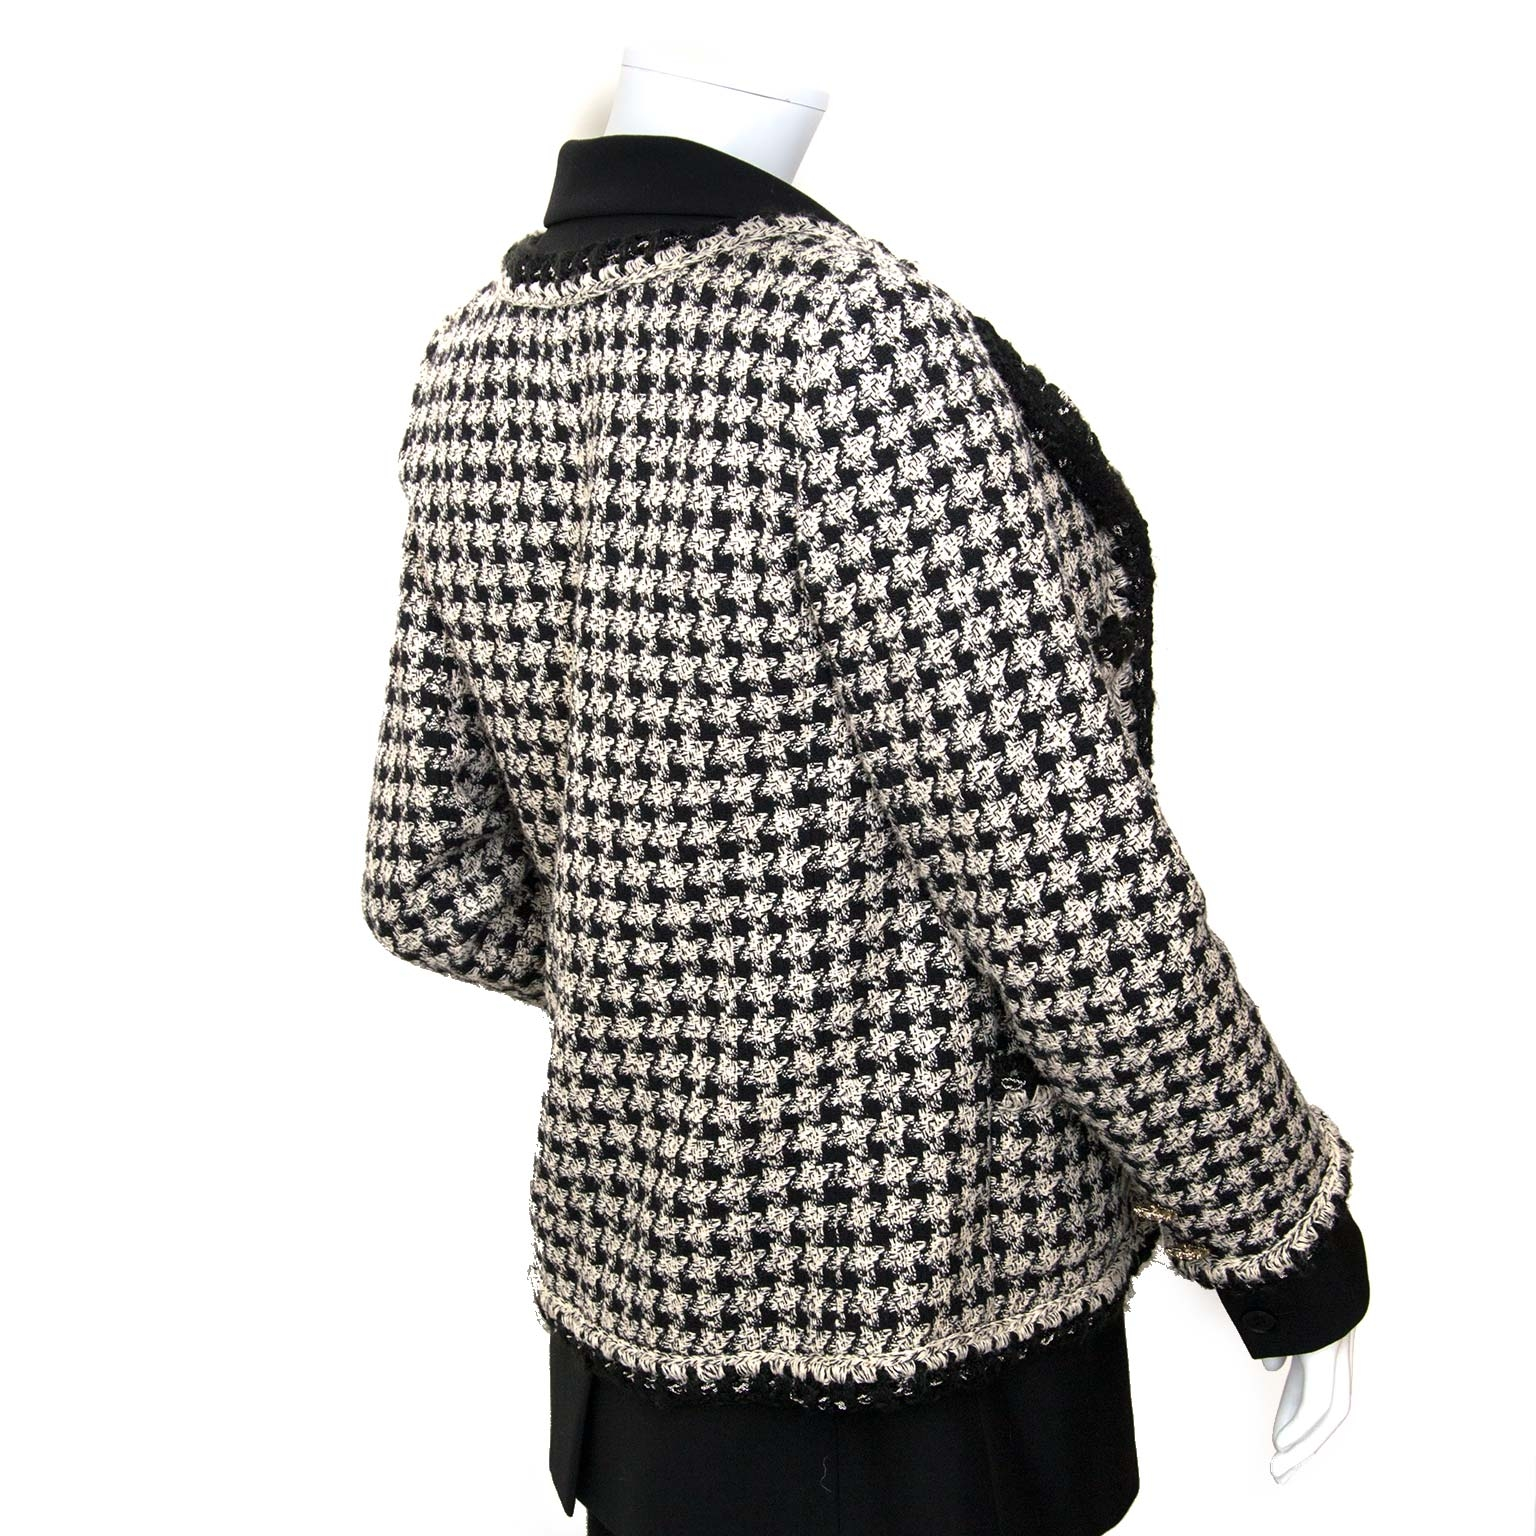 seconhand Chanel Trompe L'Oeil Tweed Blazer Jacket - size FR38 for sale at labellov